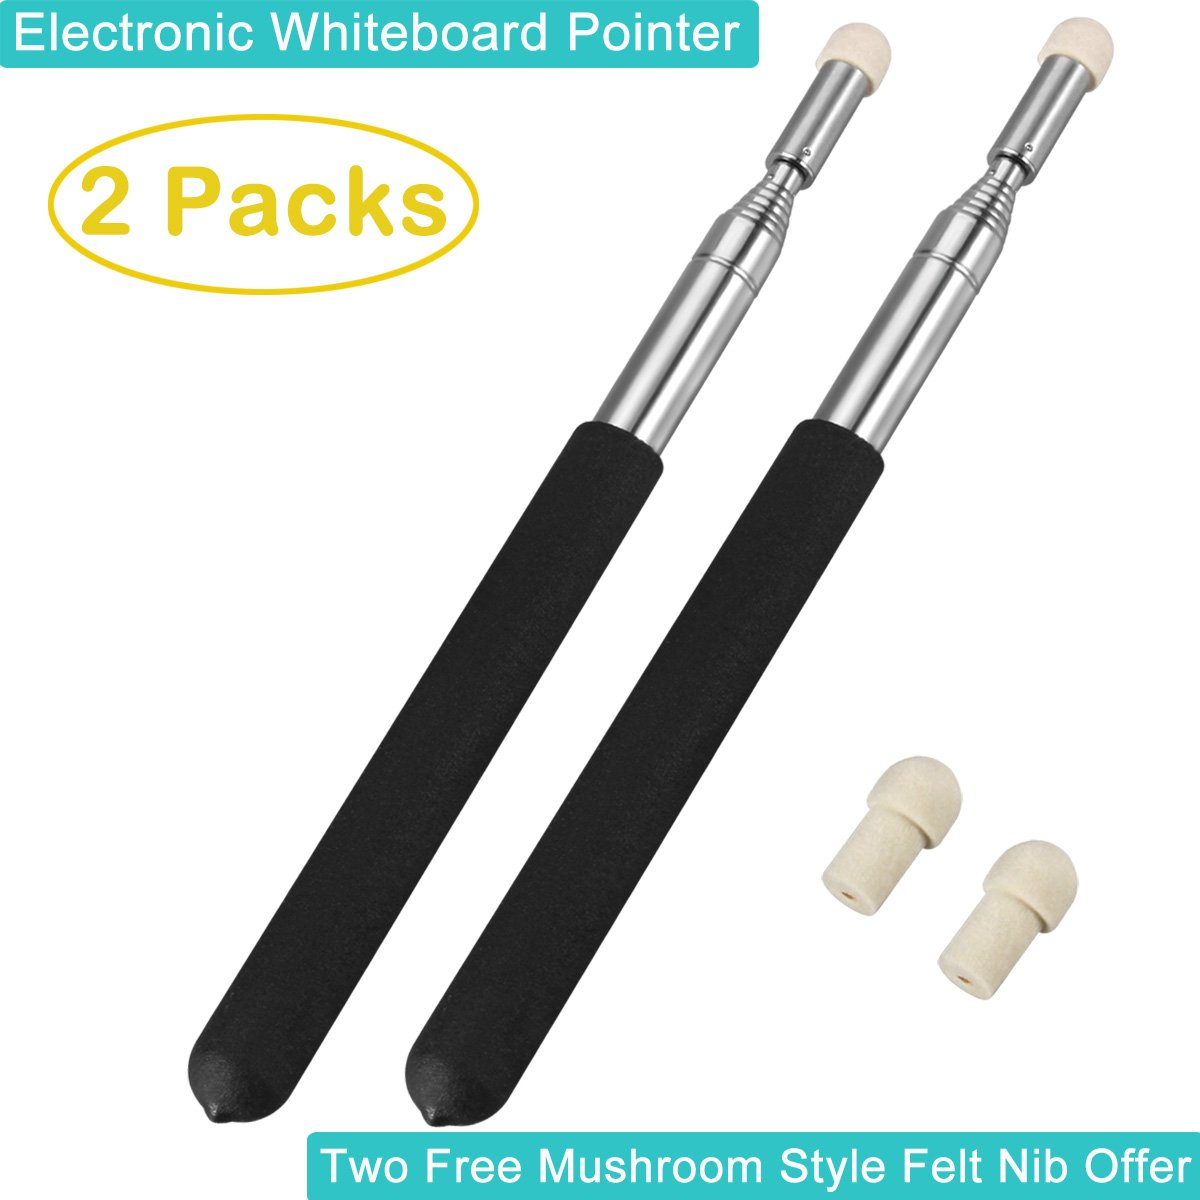 Telescoping Pointers for Teachers, 2 Pcs BonyTek Classroom Whiteboard Teacher Pointer Retractable Presentation Teaching Pointer Stick for Teachers Coach Presenter, Extra 2 Felt NIB, Extends to 39 Inch